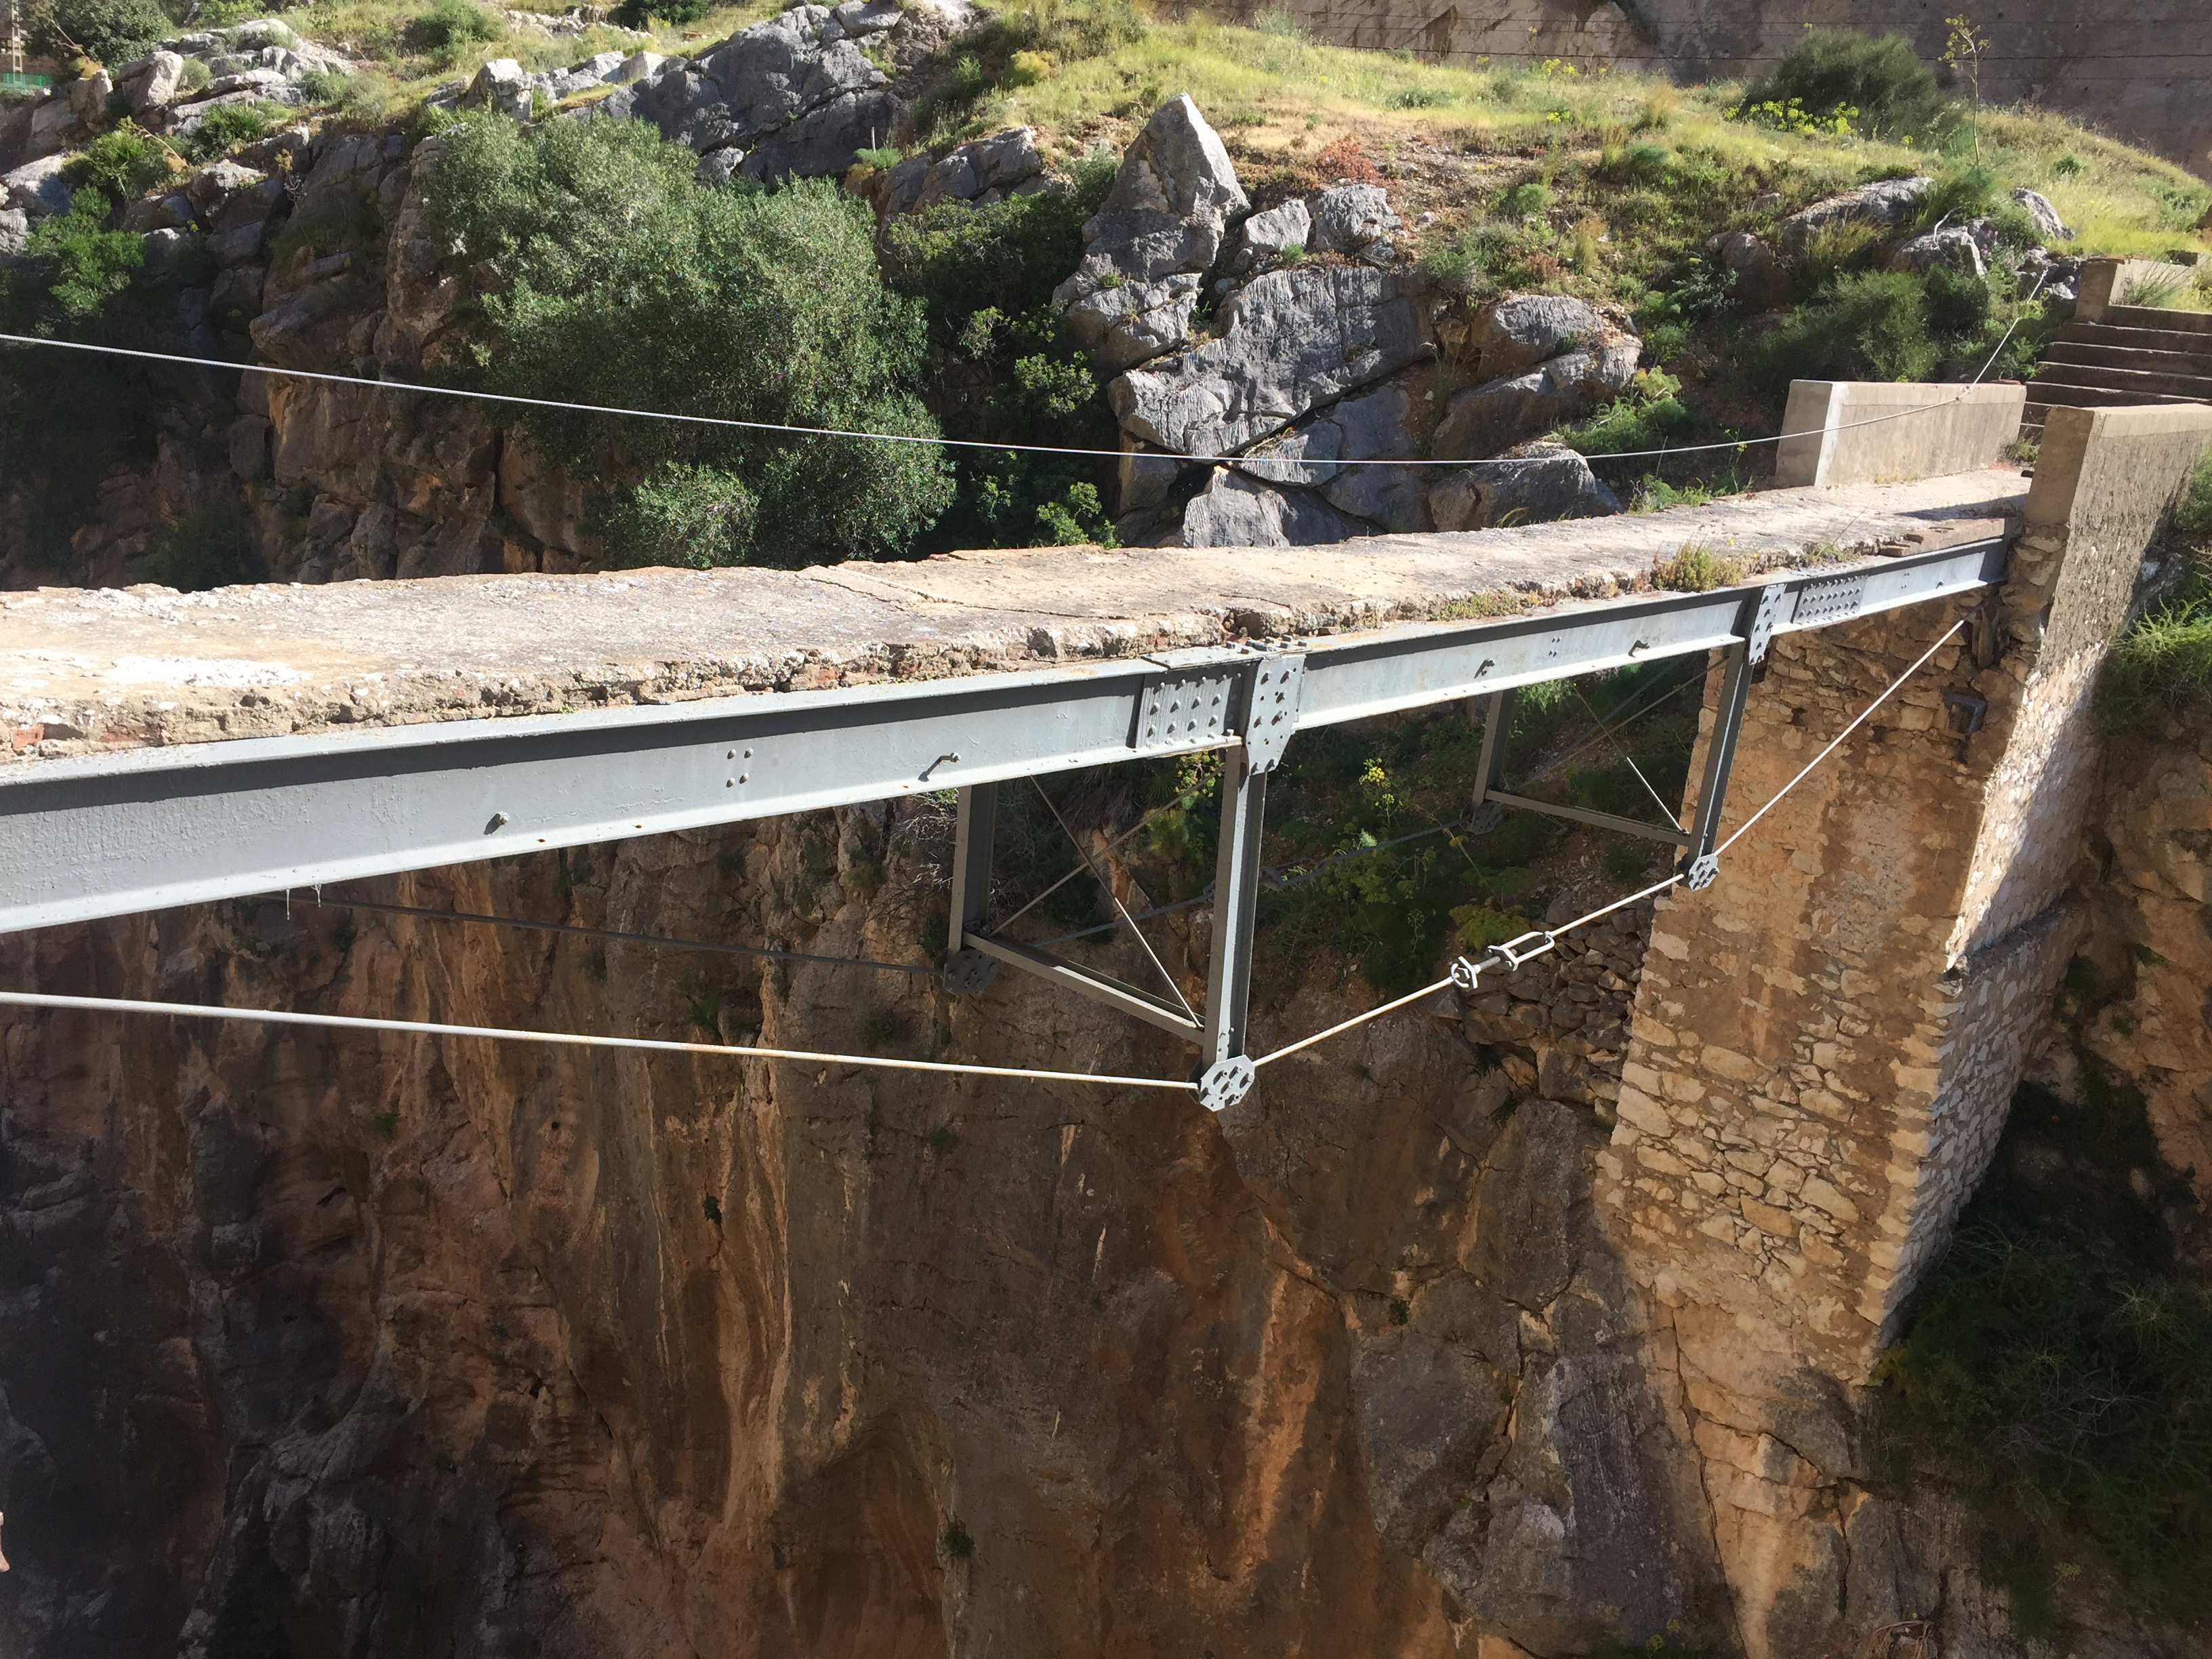 sections of the old caminito del rey still remain like this bridge